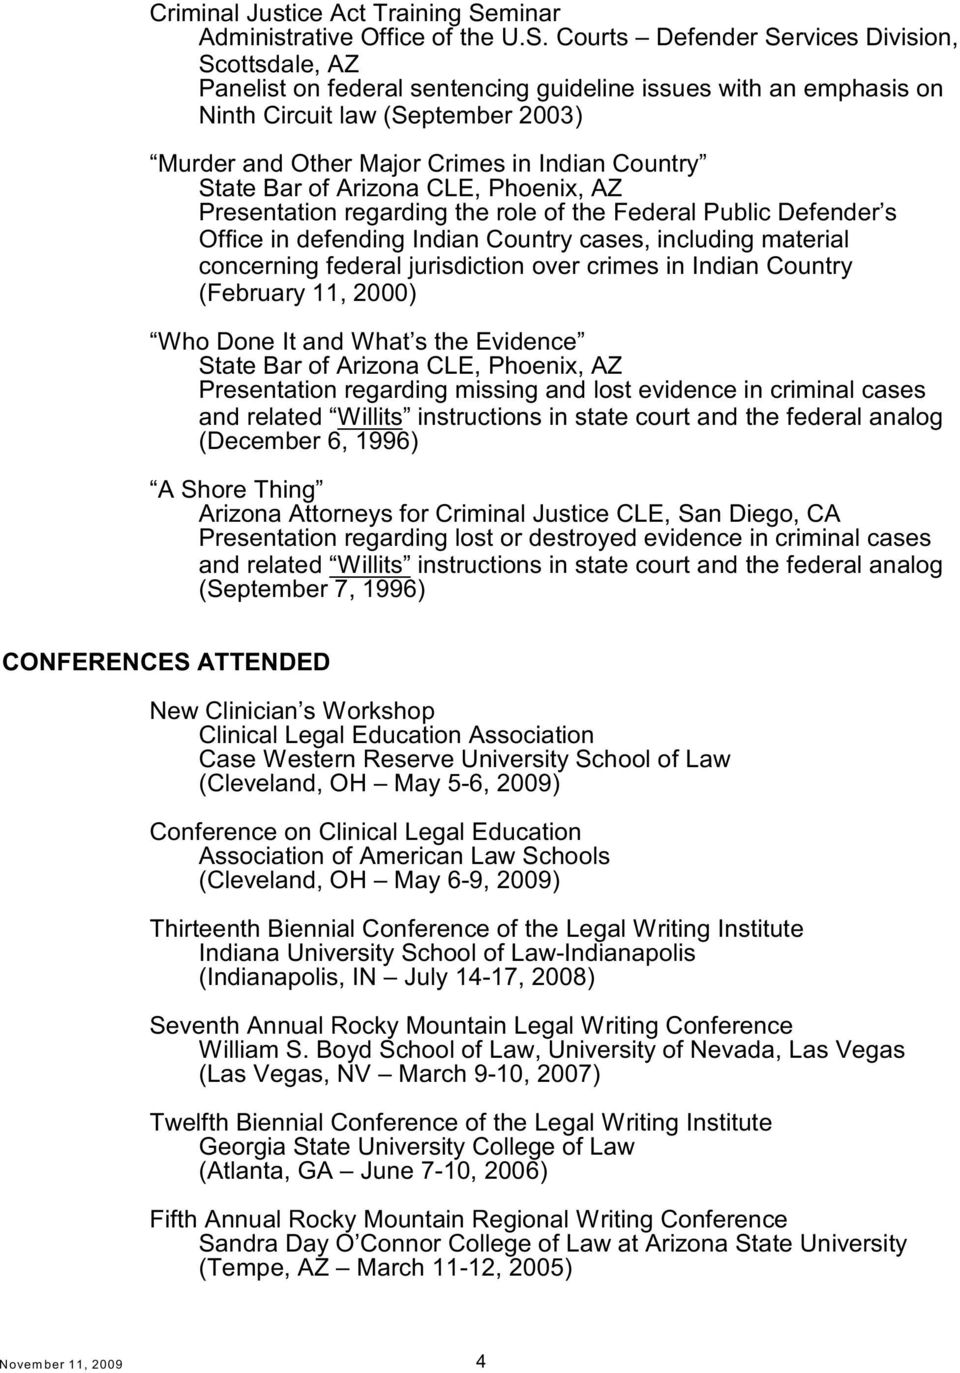 Courts Defender Services Division, Scottsdale, AZ Panelist on federal sentencing guideline issues with an emphasis on Ninth Circuit law (September 2003) Murder and Other Major Crimes in Indian